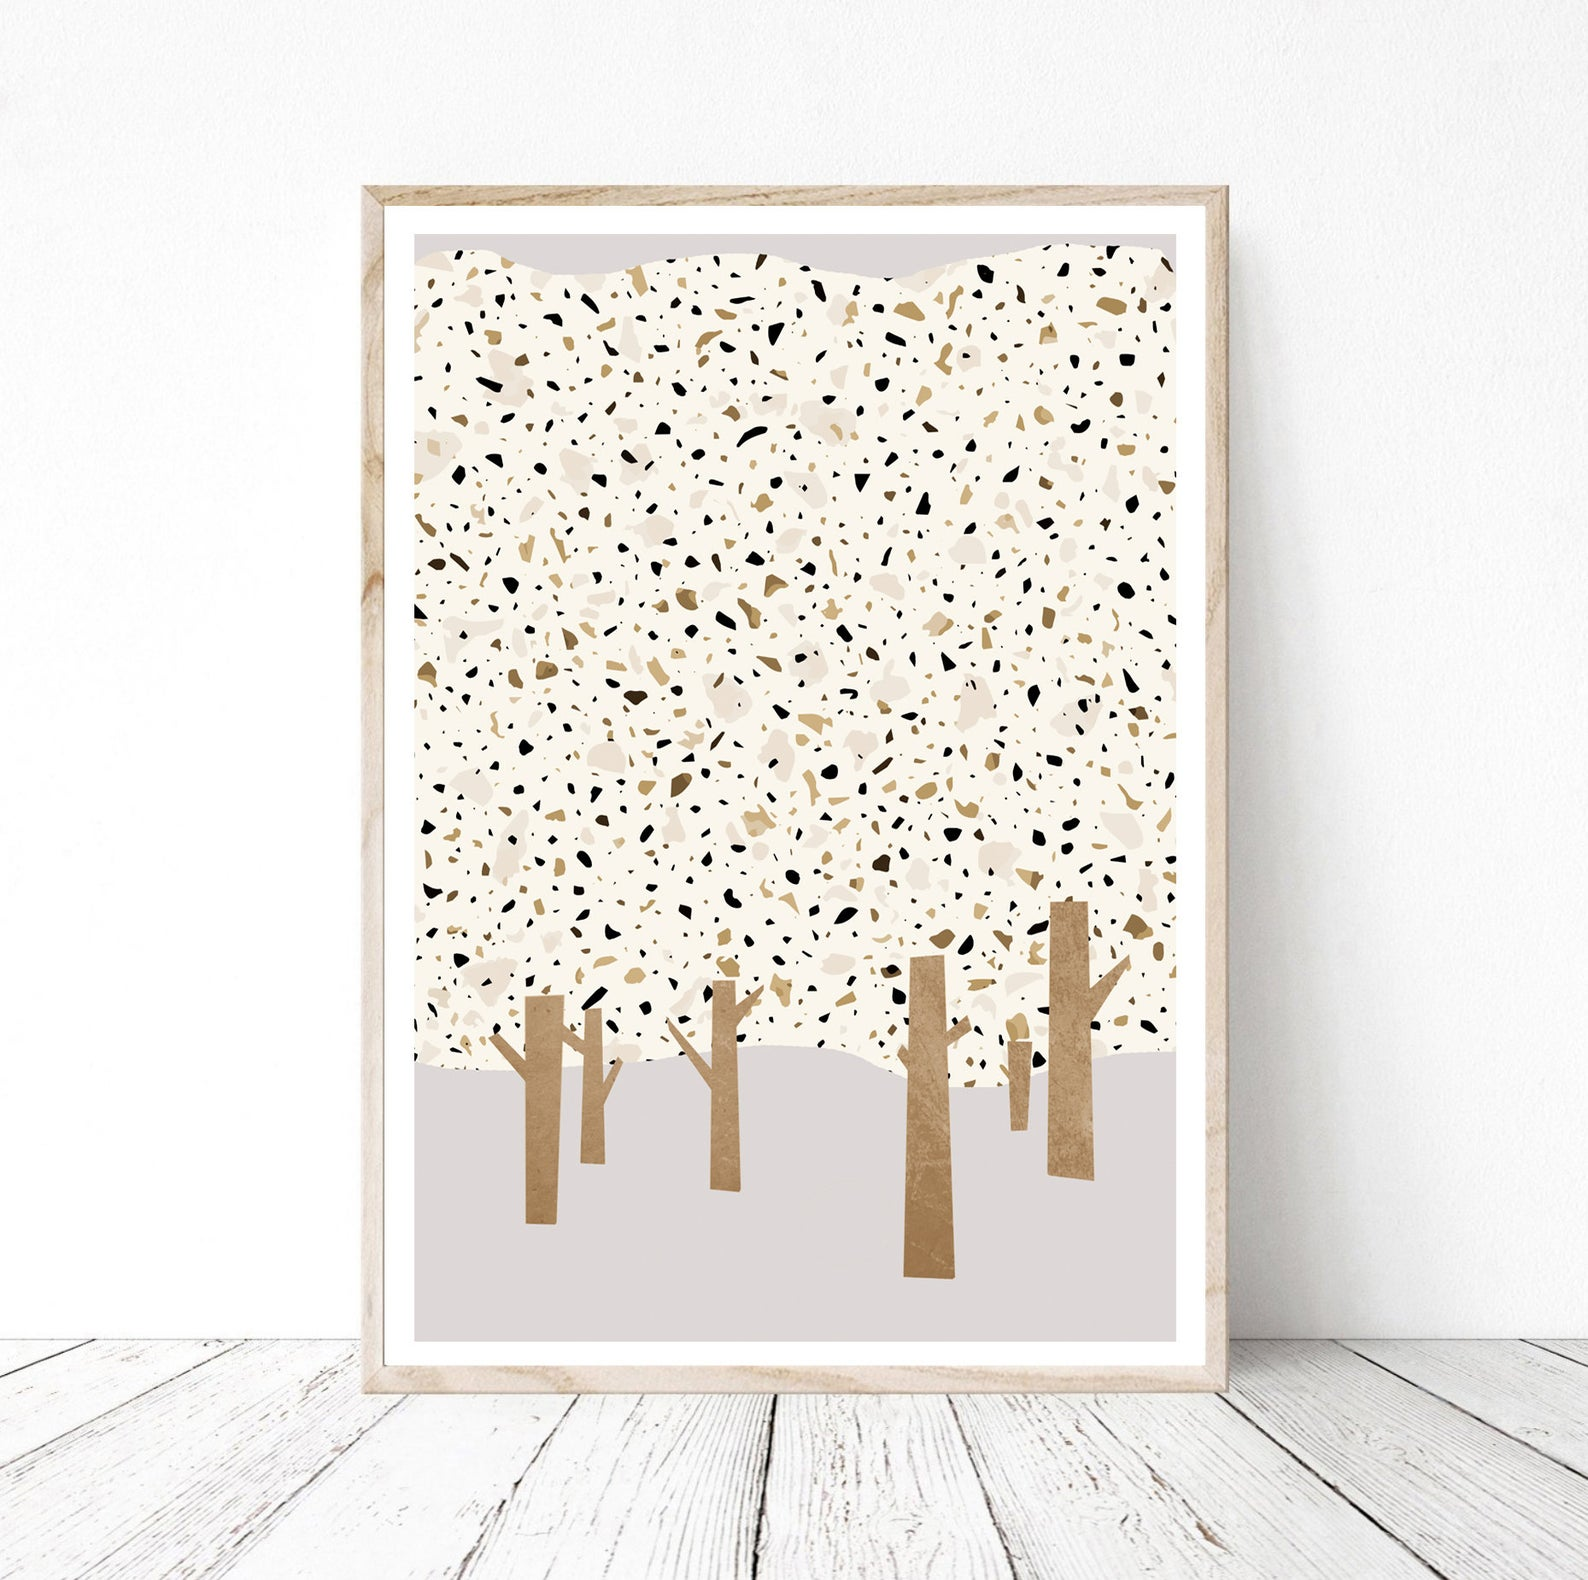 Terrazzo artwork from Etsy shop Viola & Dominic